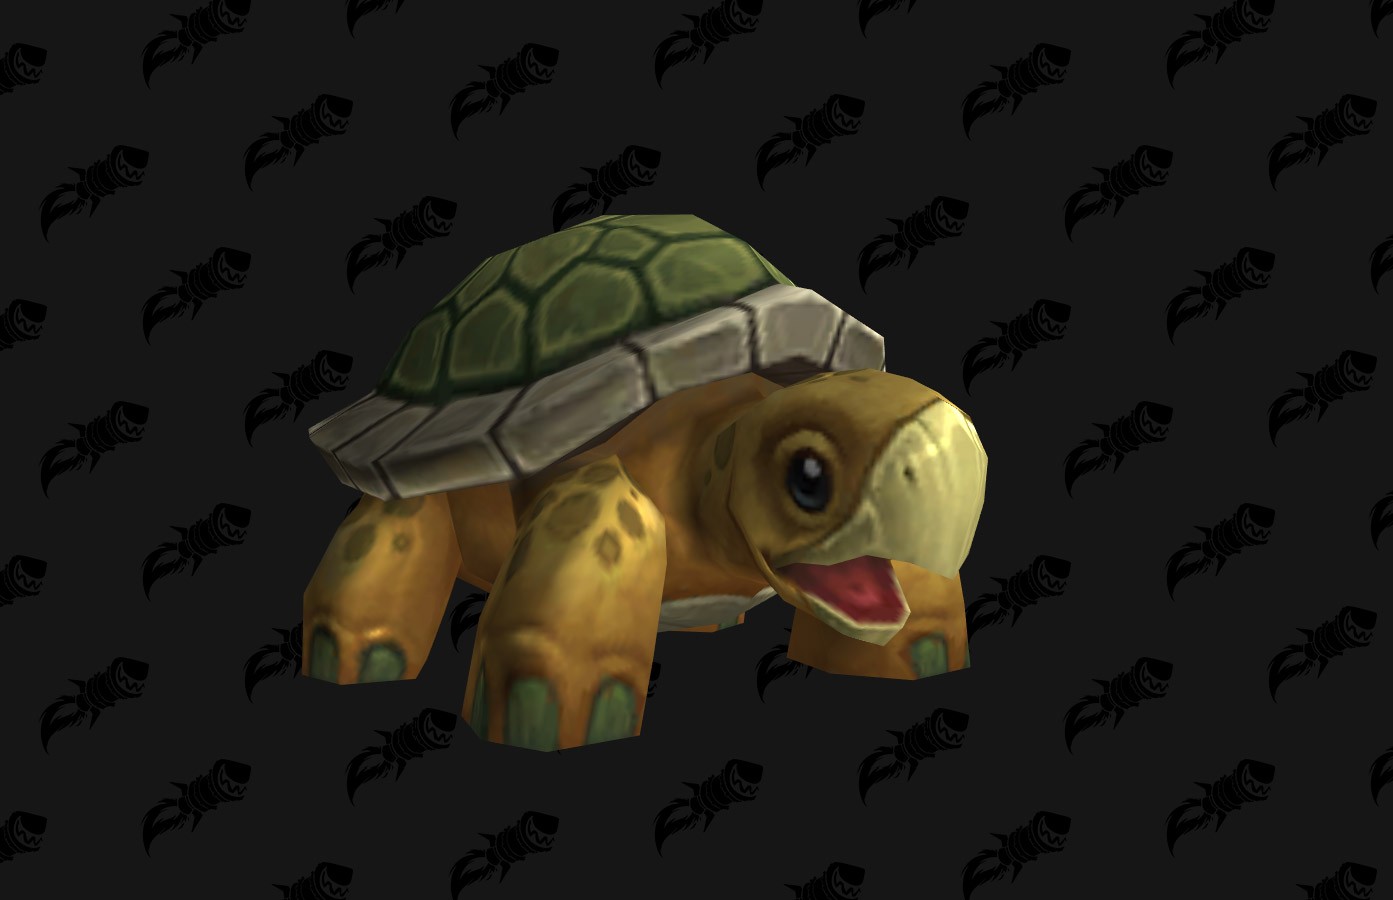 Mascotte Cou'pa de la faction Chercheurs tortollans